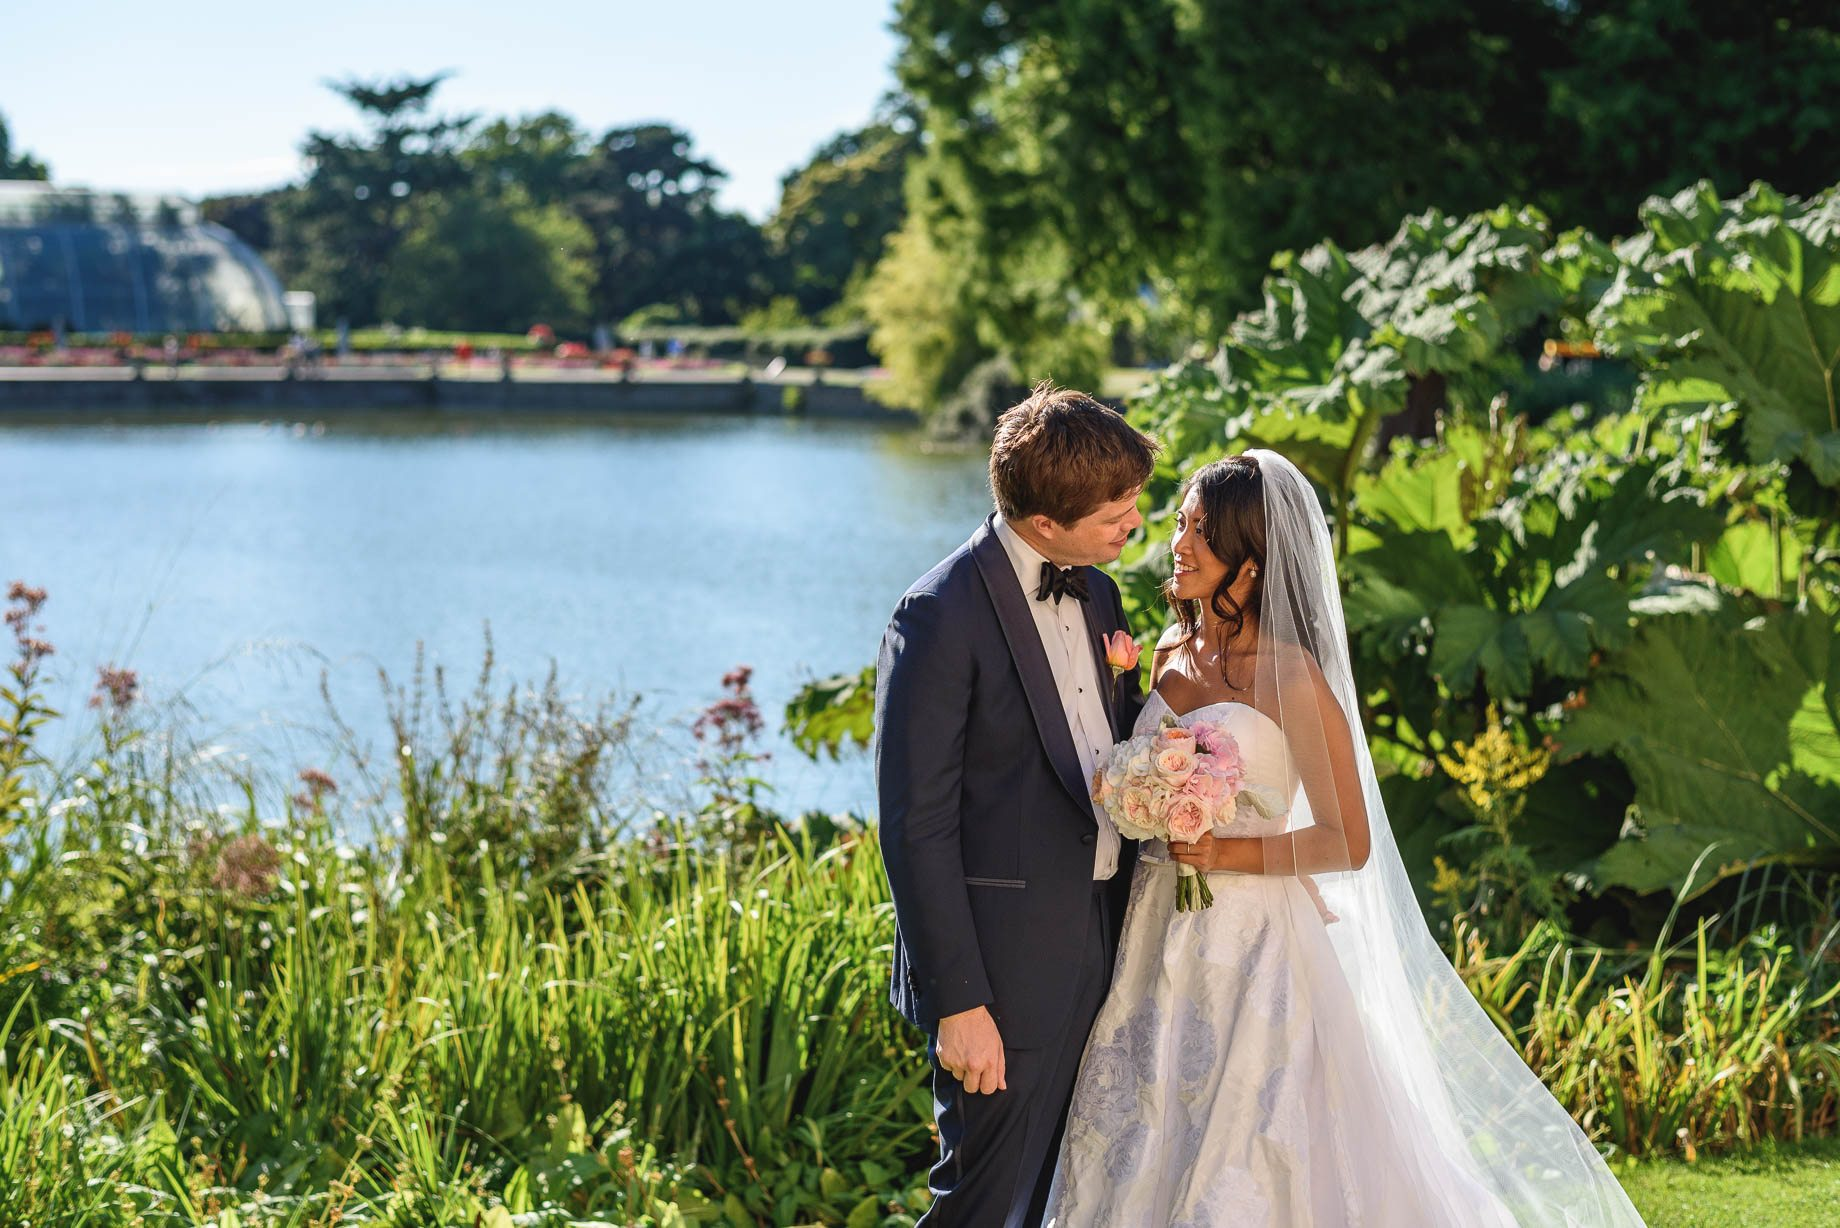 Kew Gardens wedding photography - Guy Collier Photography - Gloria and Frederik (82 of 173)